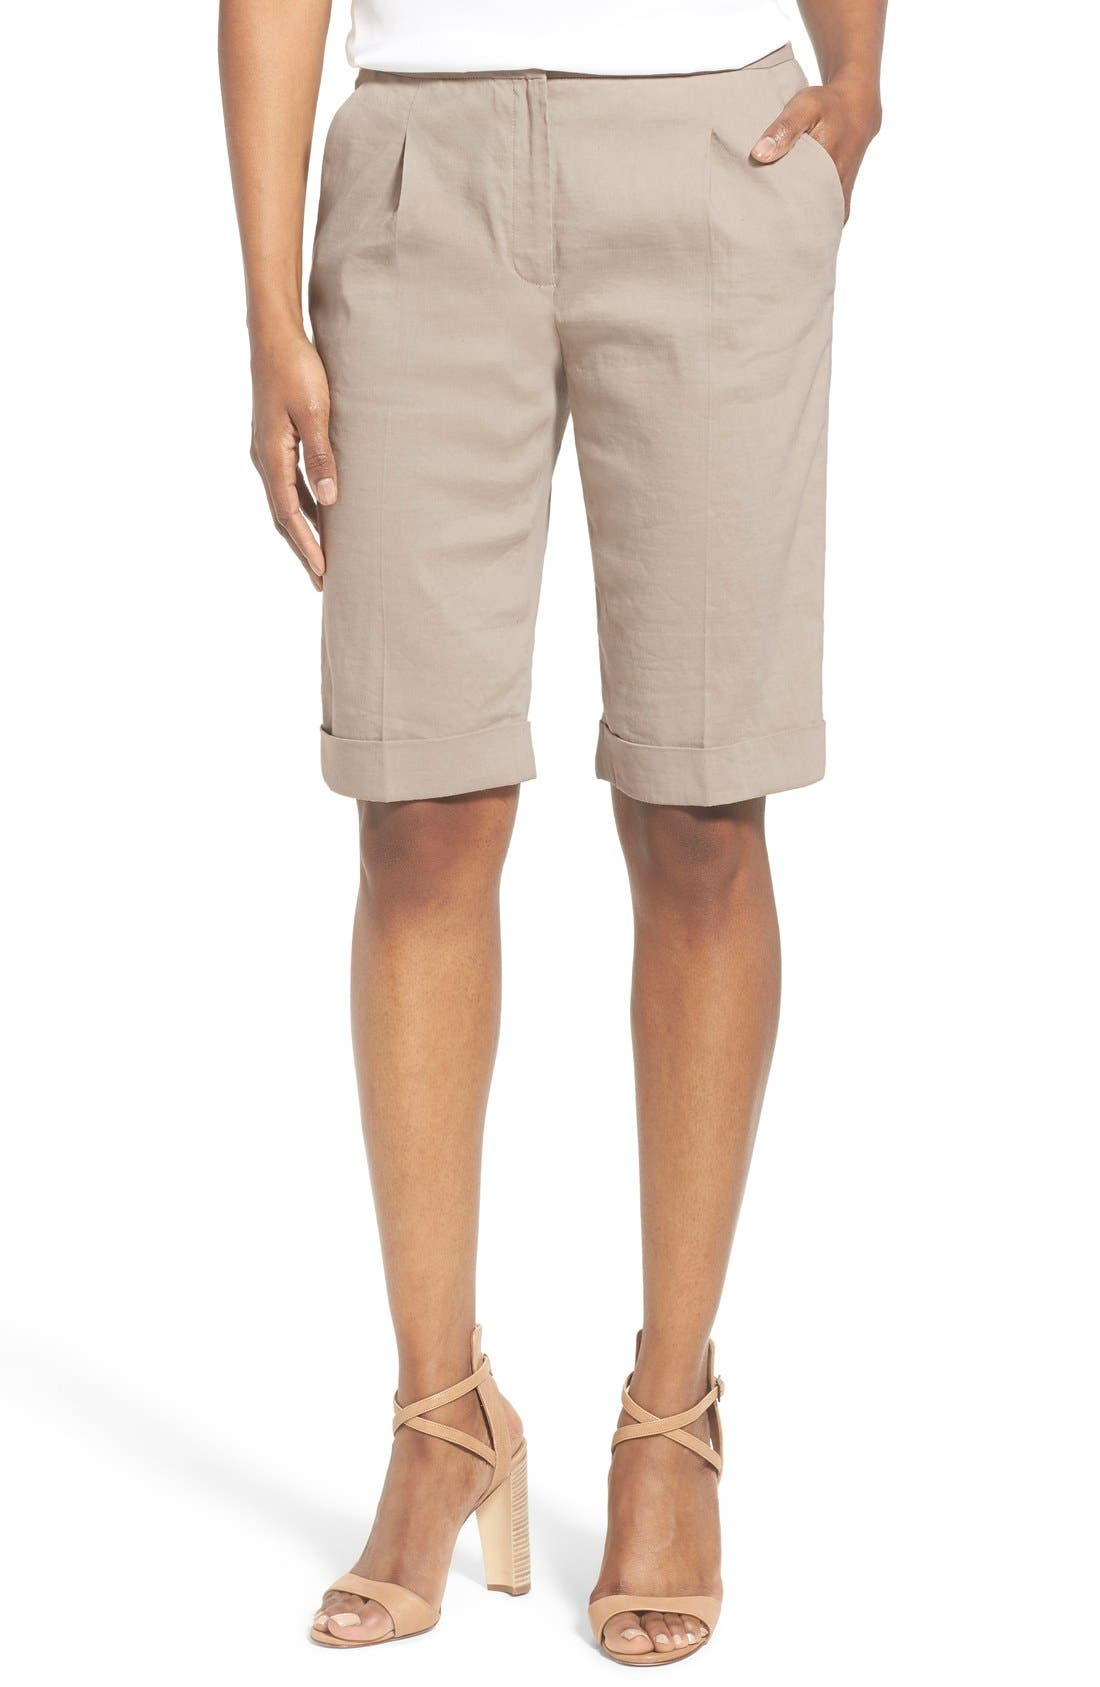 Alternate Image 1 Selected - Elie Tahari 'City' Cuff Linen Blend Walking Shorts